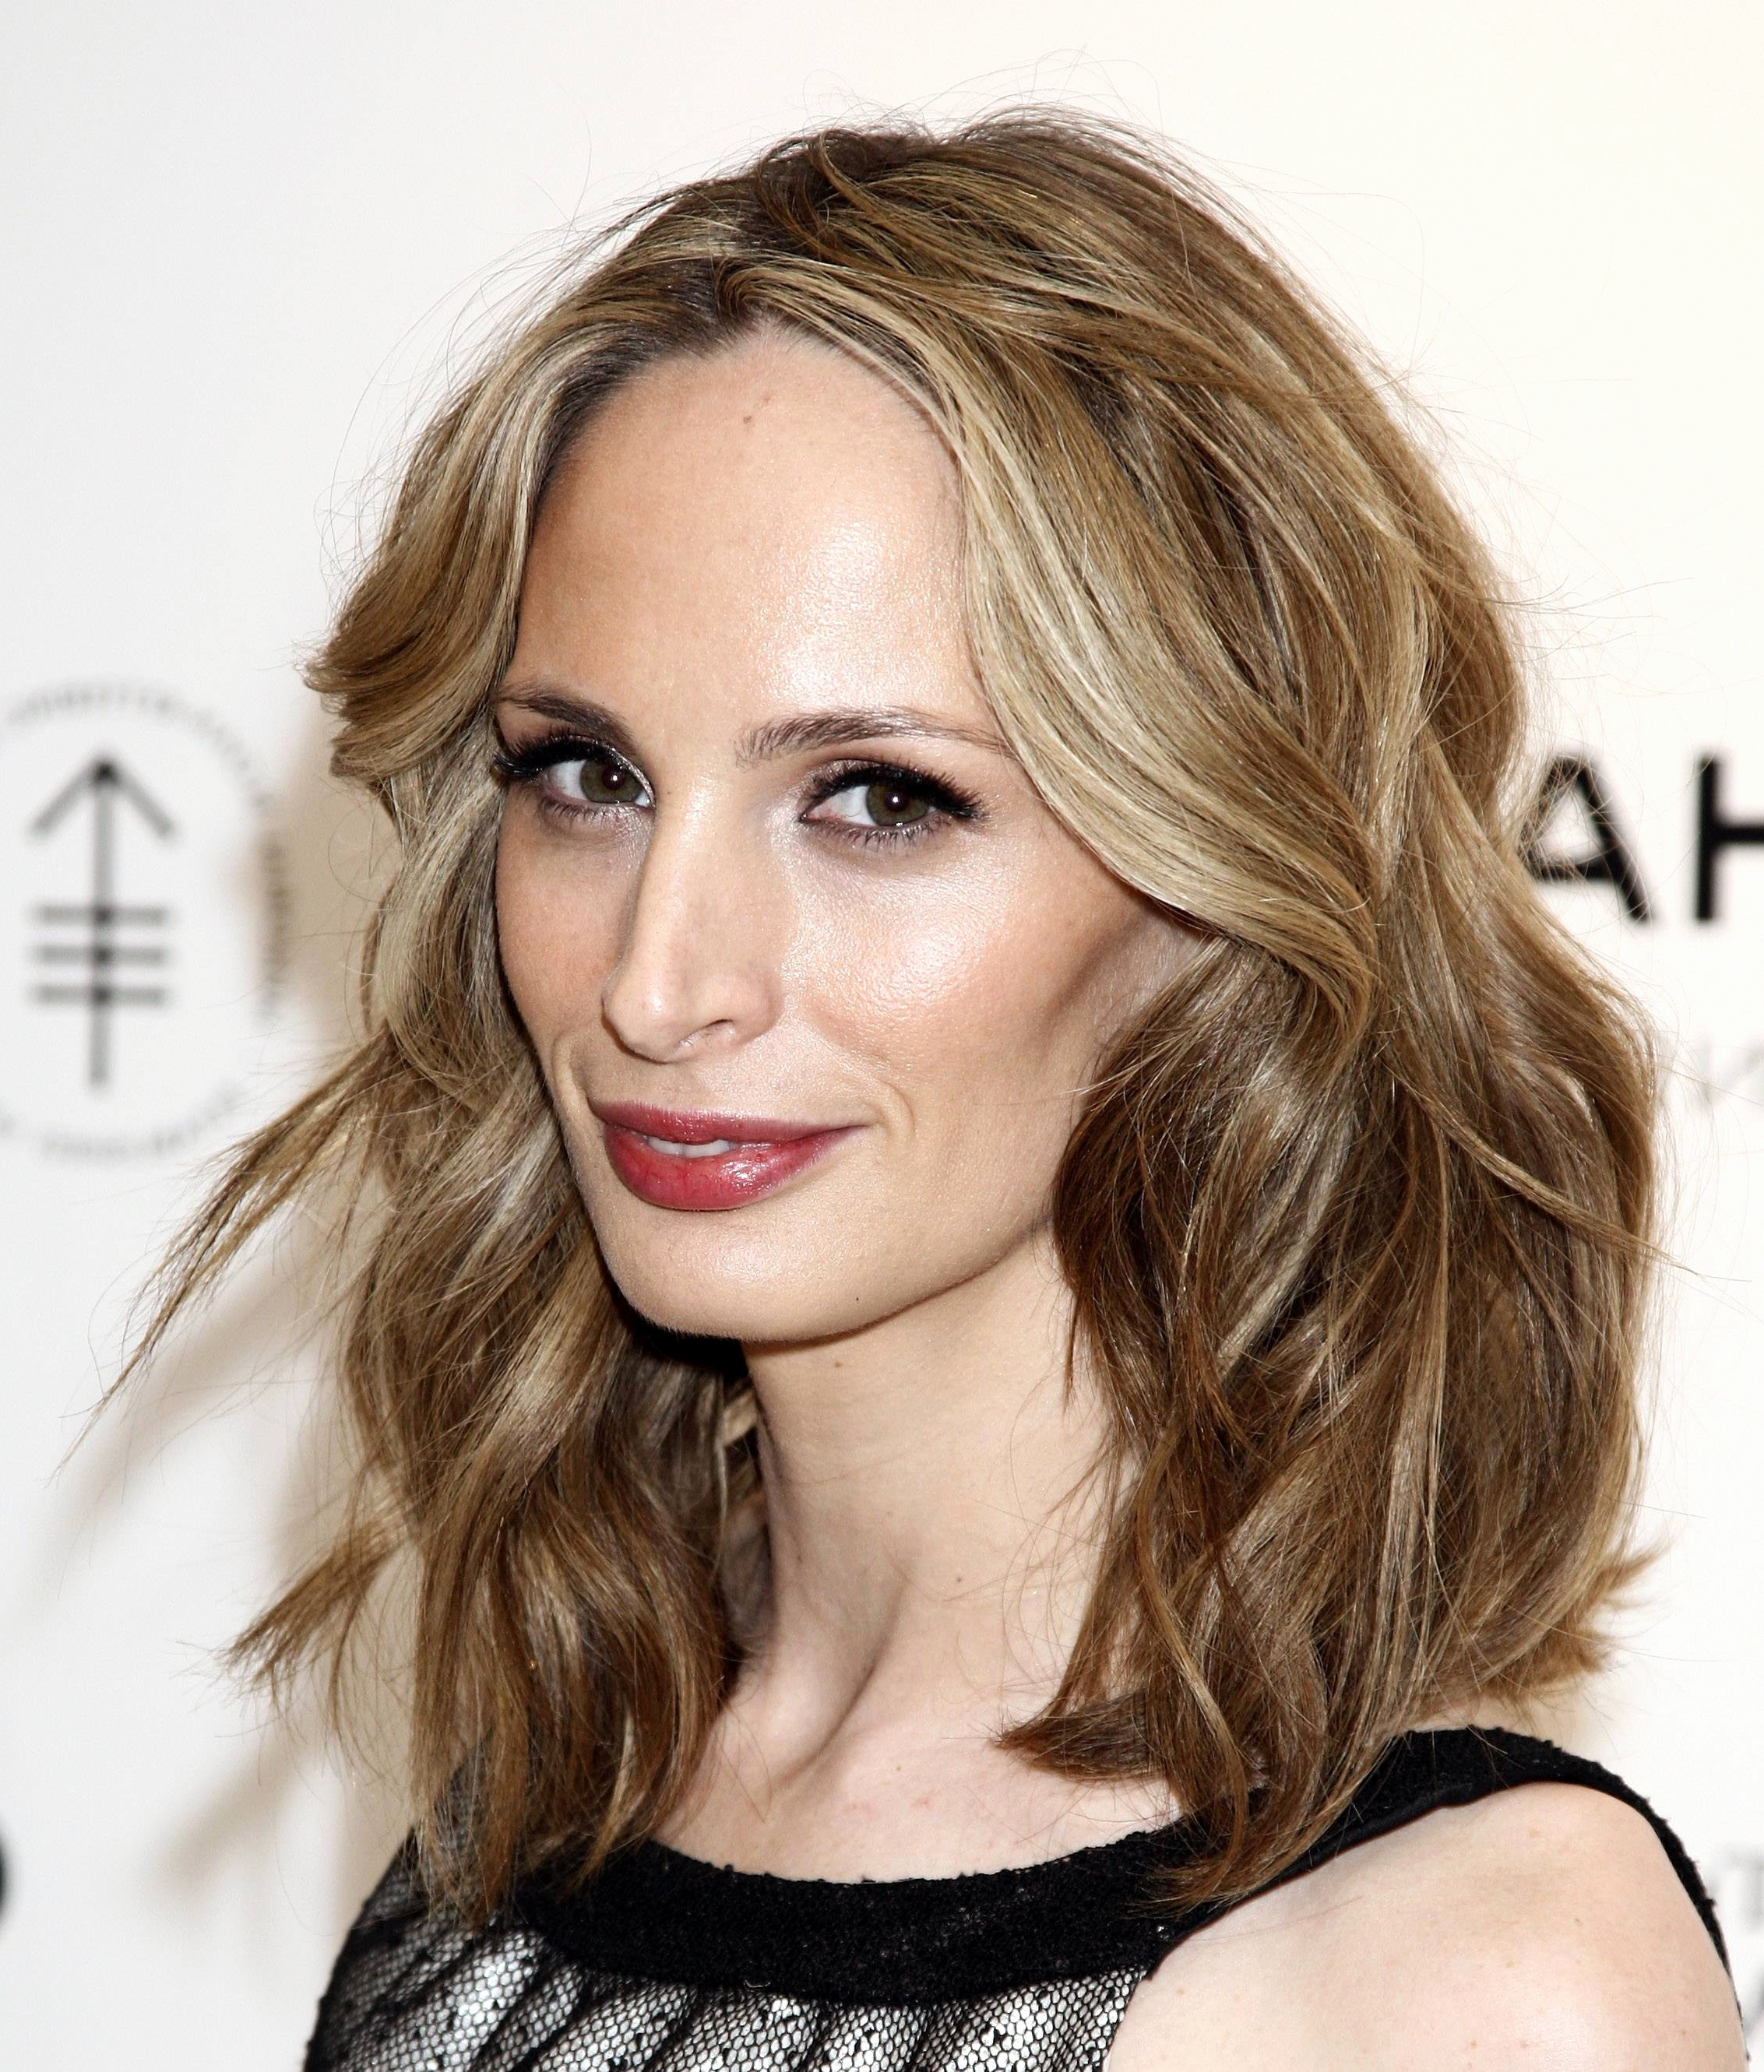 Medium Length Hair Colors Shoulder Length Hairstyles And Color Fresh Regarding Short Shoulder Length Hairstyles For Women (View 16 of 25)